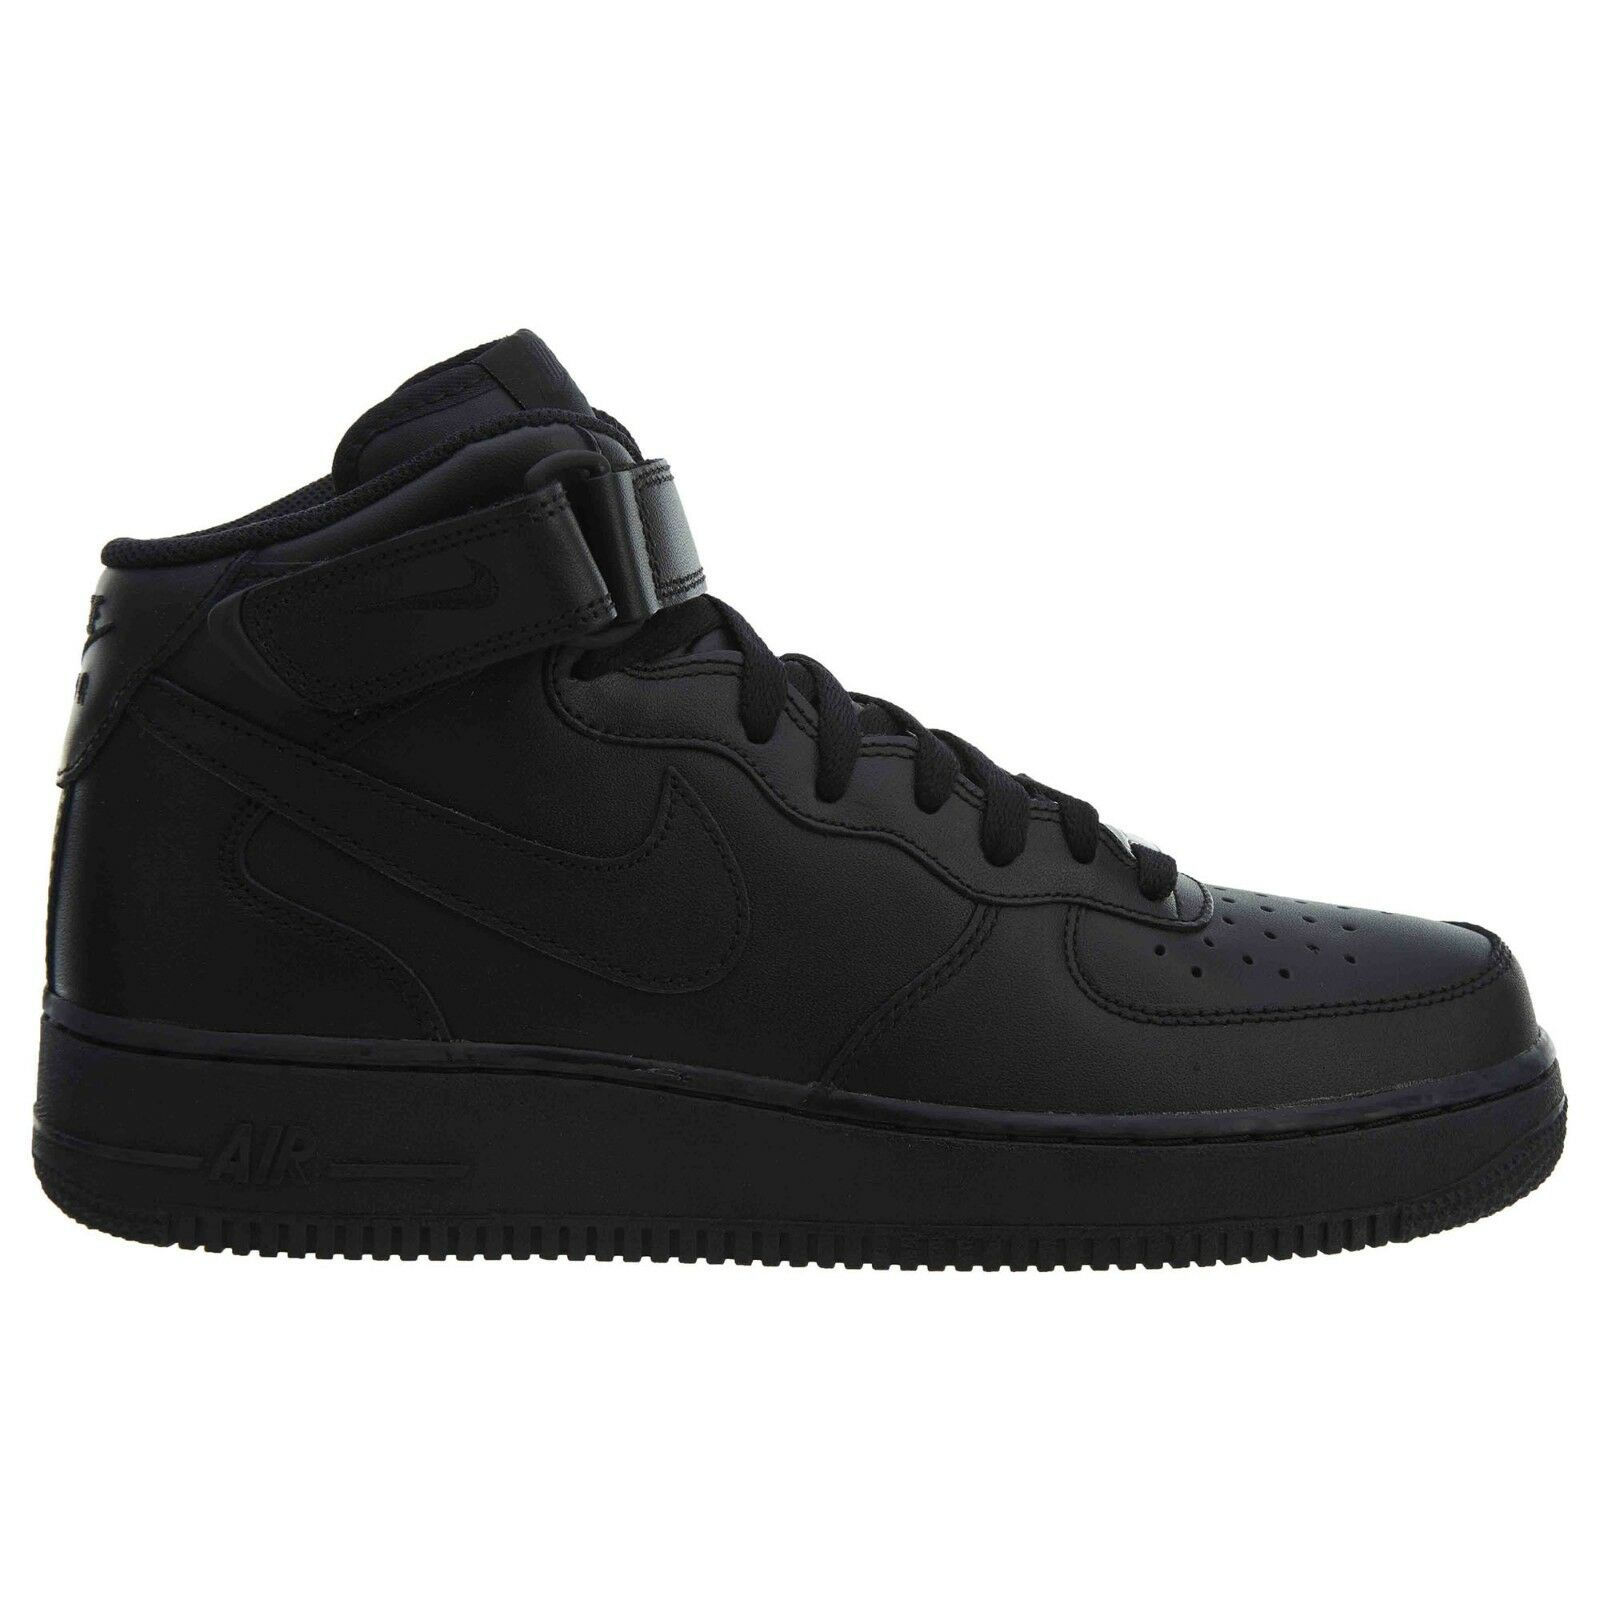 Nike Air Force 1 Mid '07 Mens 315123-001 Black Leather Athletic shoes Size 8